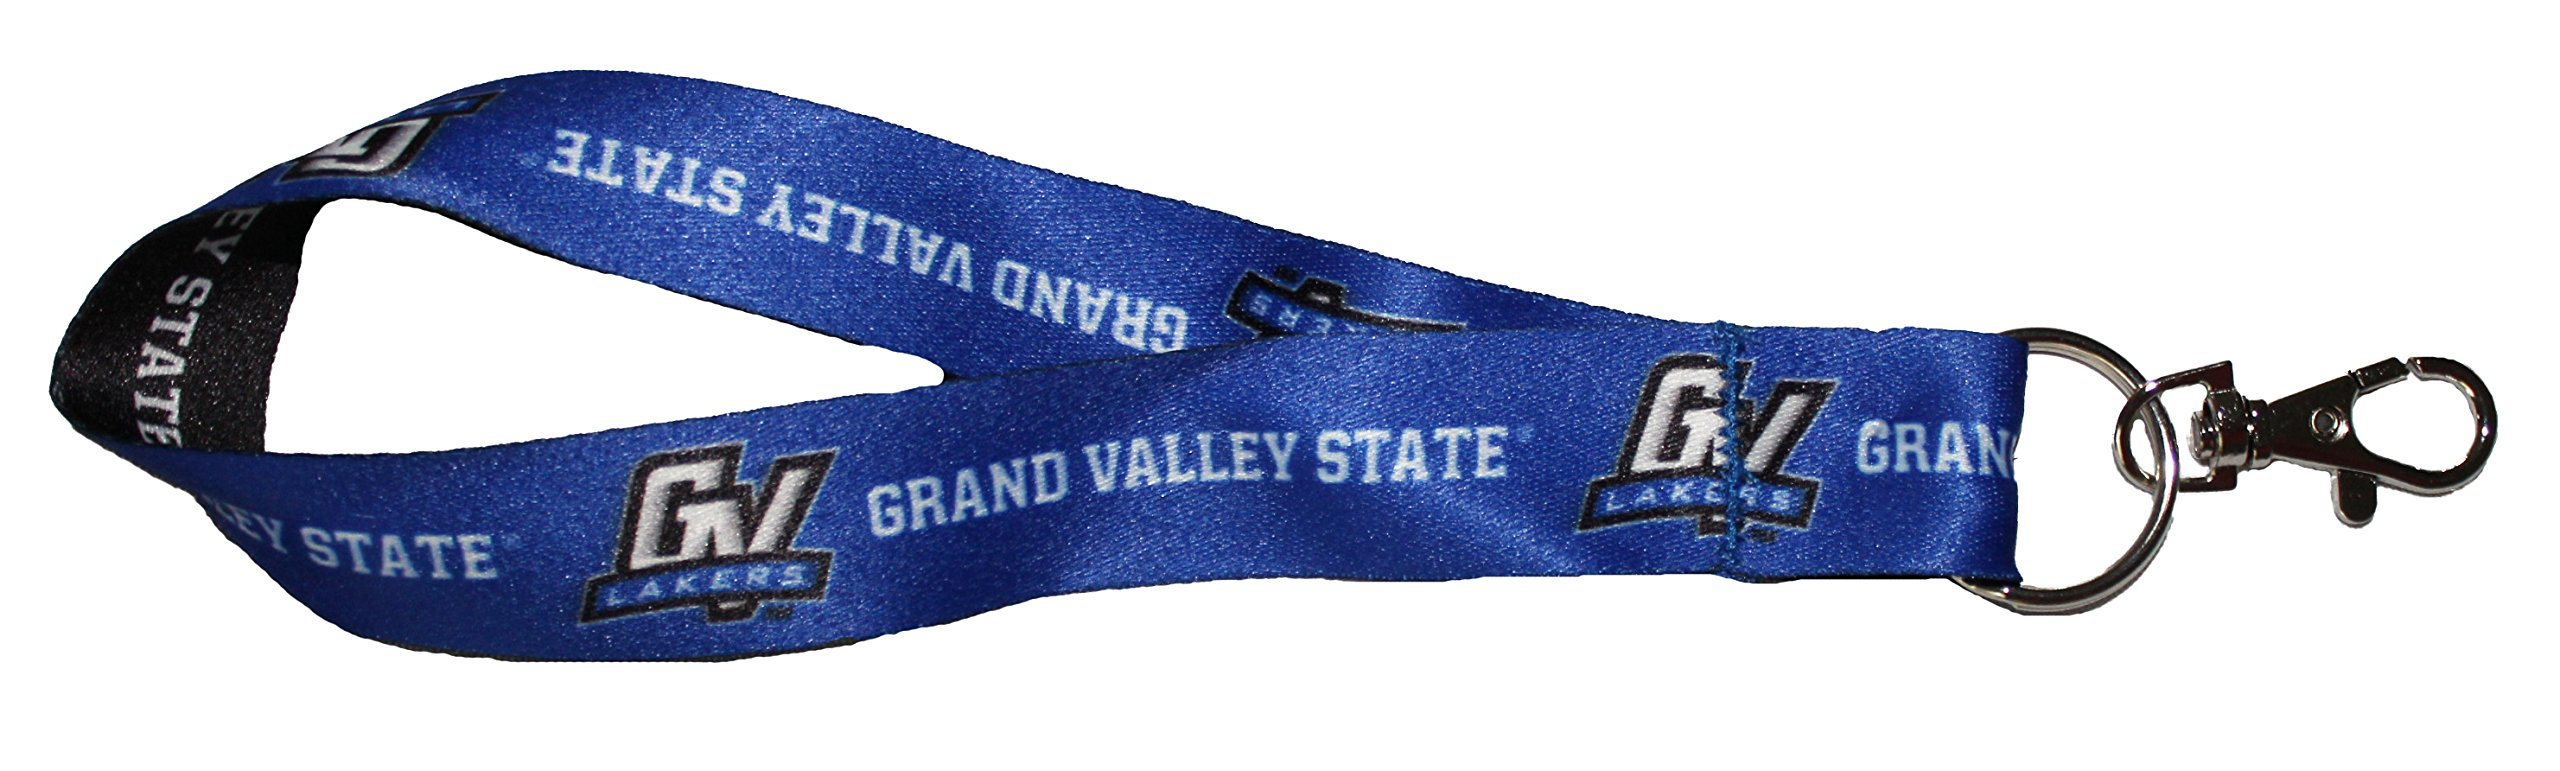 WinCraft Grand Valley State University GVSU Lakers Key Strap Key Chain, 9.5 inches